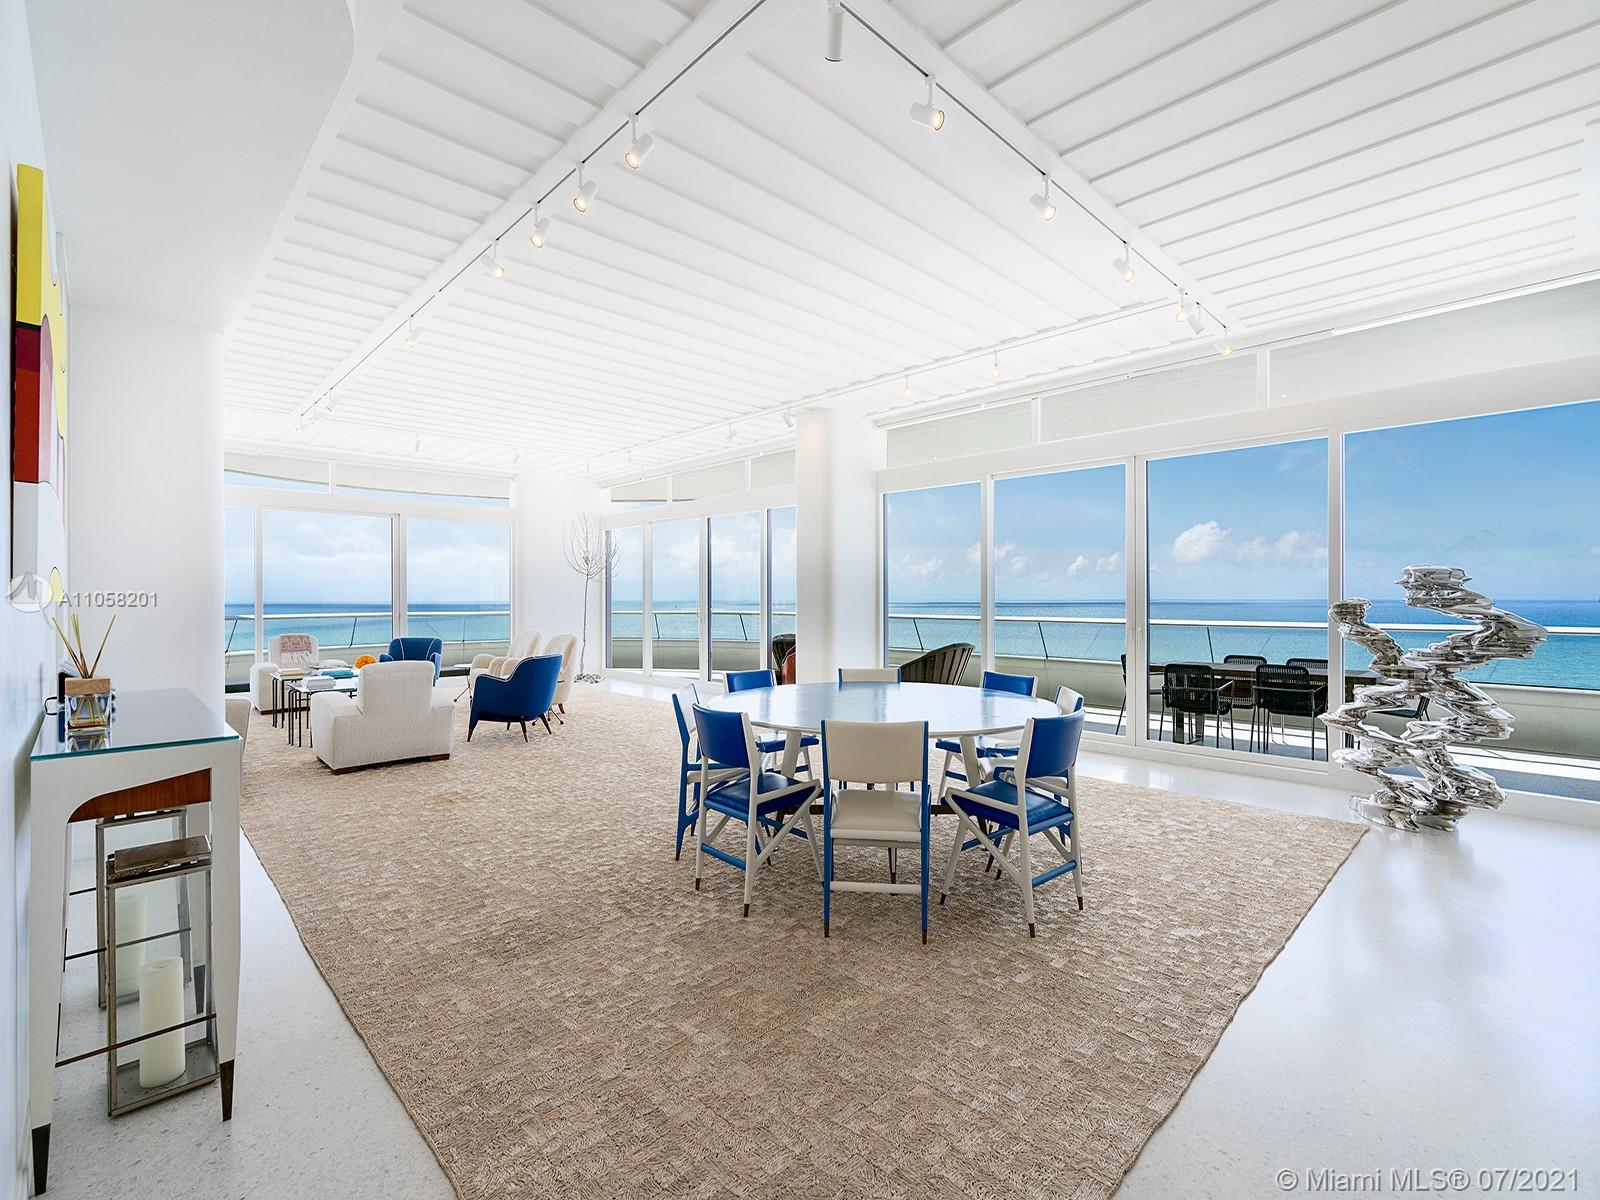 This bespoke oceanfront residence on a high floor of the extraordinary Faena House, by the renowned architecture firm Foster + Partners, sprawls over 4,730 SqFt. with 4 bedrooms plus a butler's room, and six and a half baths. The gourmet kitchen was custom-designed by Molteni & C and Foster+Partners, with Miele appliances, while outside, the deep alero offers a spectacular ocean backdrop and access to almost every room. Terrazzo and light oak floors are throughout. The residence's interior design by Jacques Grange adds touches like a rhythmic bamboo wall-paneling in the lounge, or a multi-layer plaster finish throughout. In addition to the impressive amenities offered by the building, residents have full access to everything the adjacent Faena Hotel can provide, inclusive of room service.